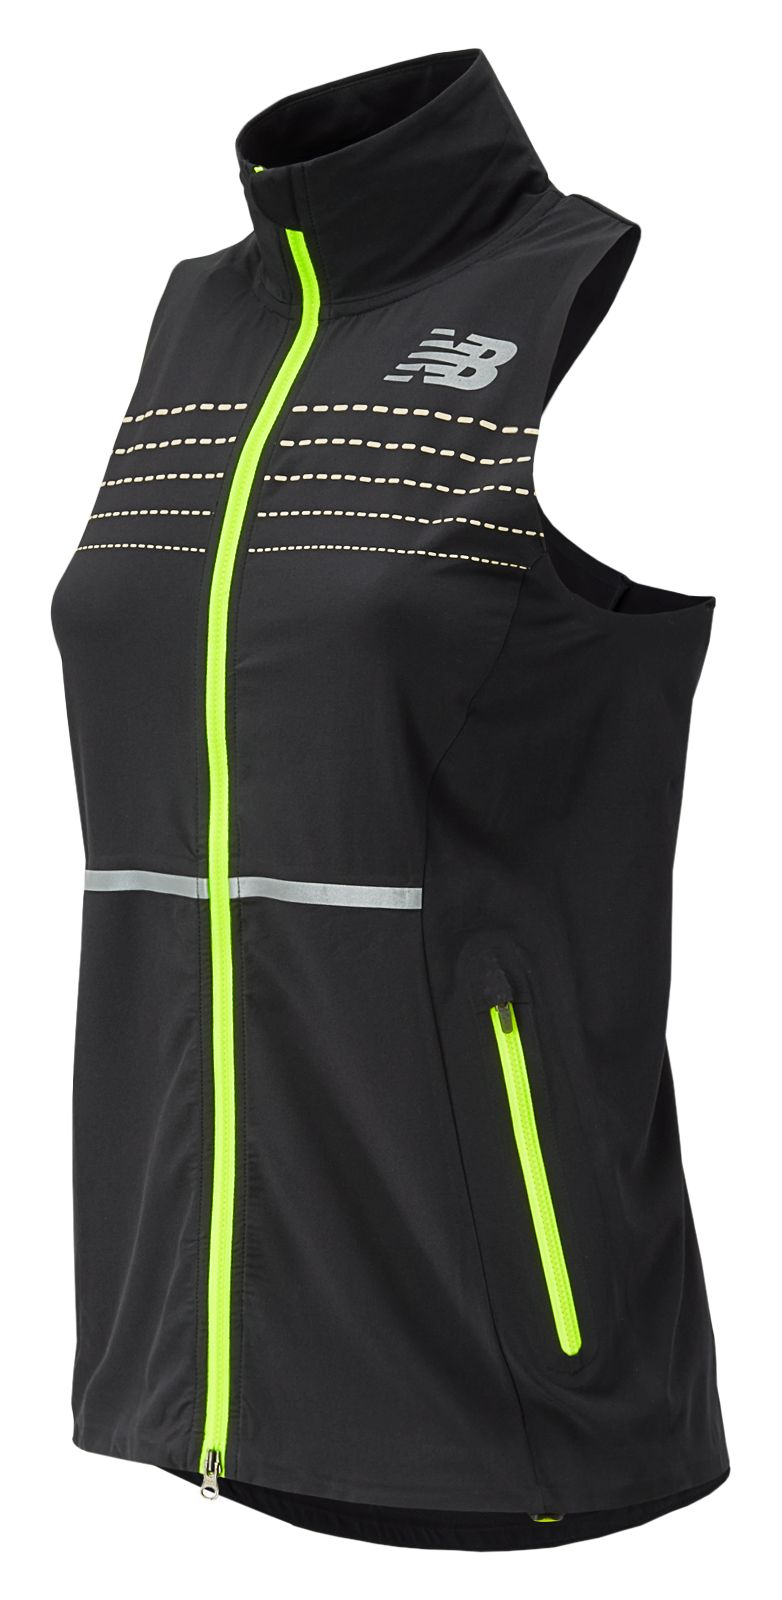 New Balance : Beacon Vest : Women's Apparel Outlet : WV53201BK